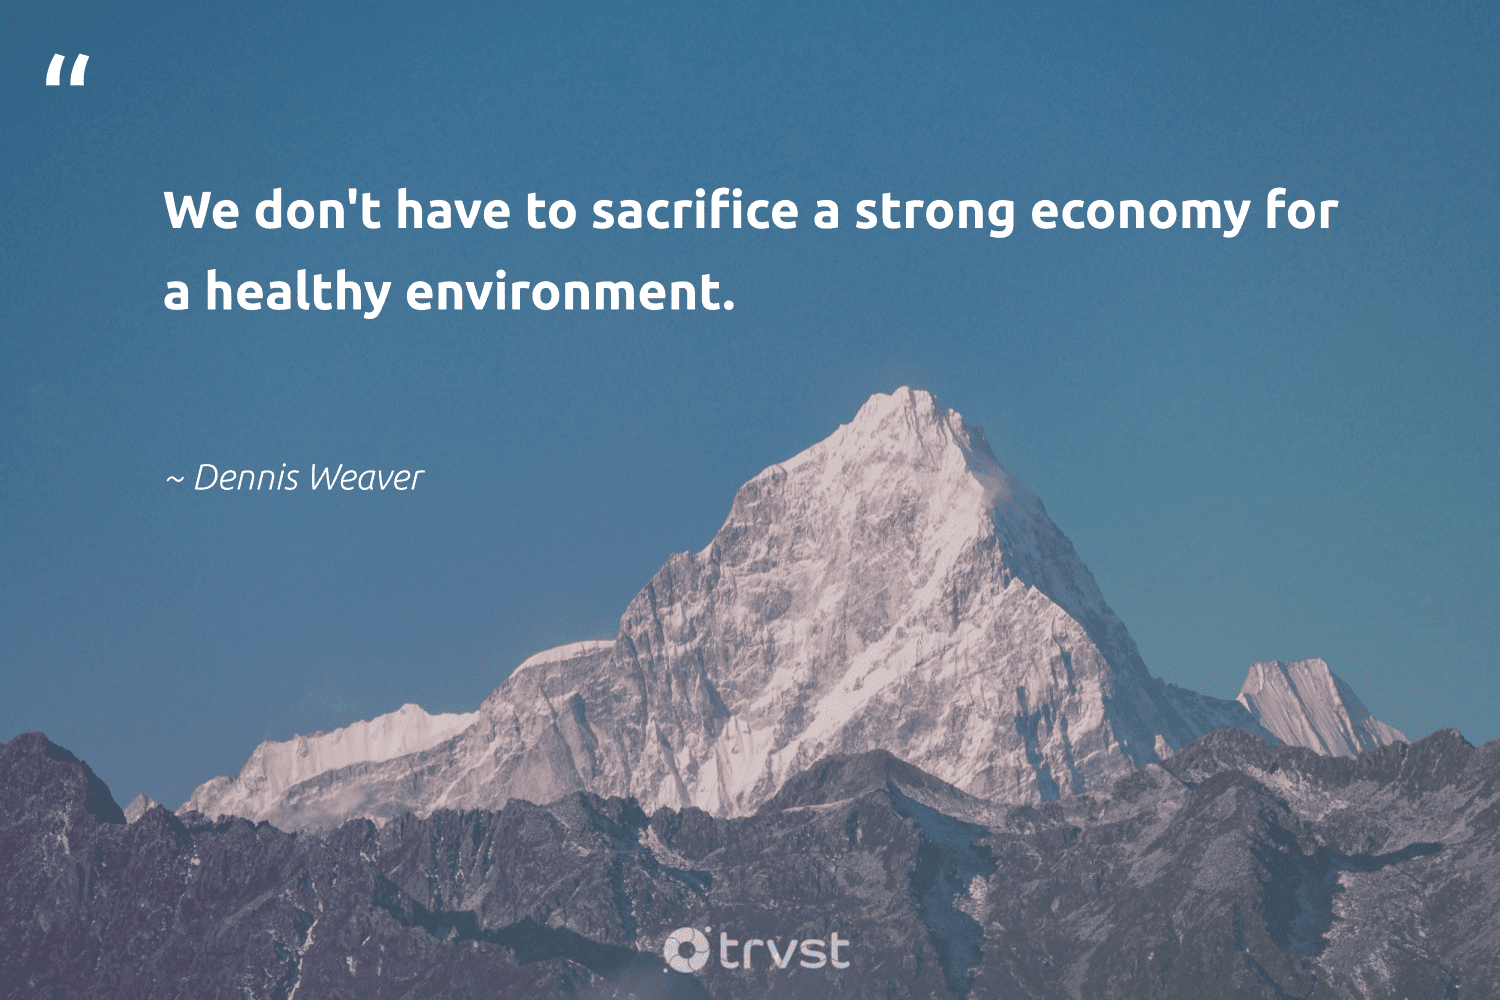 """""""We don't have to sacrifice a strong economy for a healthy environment.""""  - Dennis Weaver #trvst #quotes #environment #healthy #conservation #wildernessnation #naturelovers #socialimpact #earth #gogreen #ecofriendly #thinkgreen"""